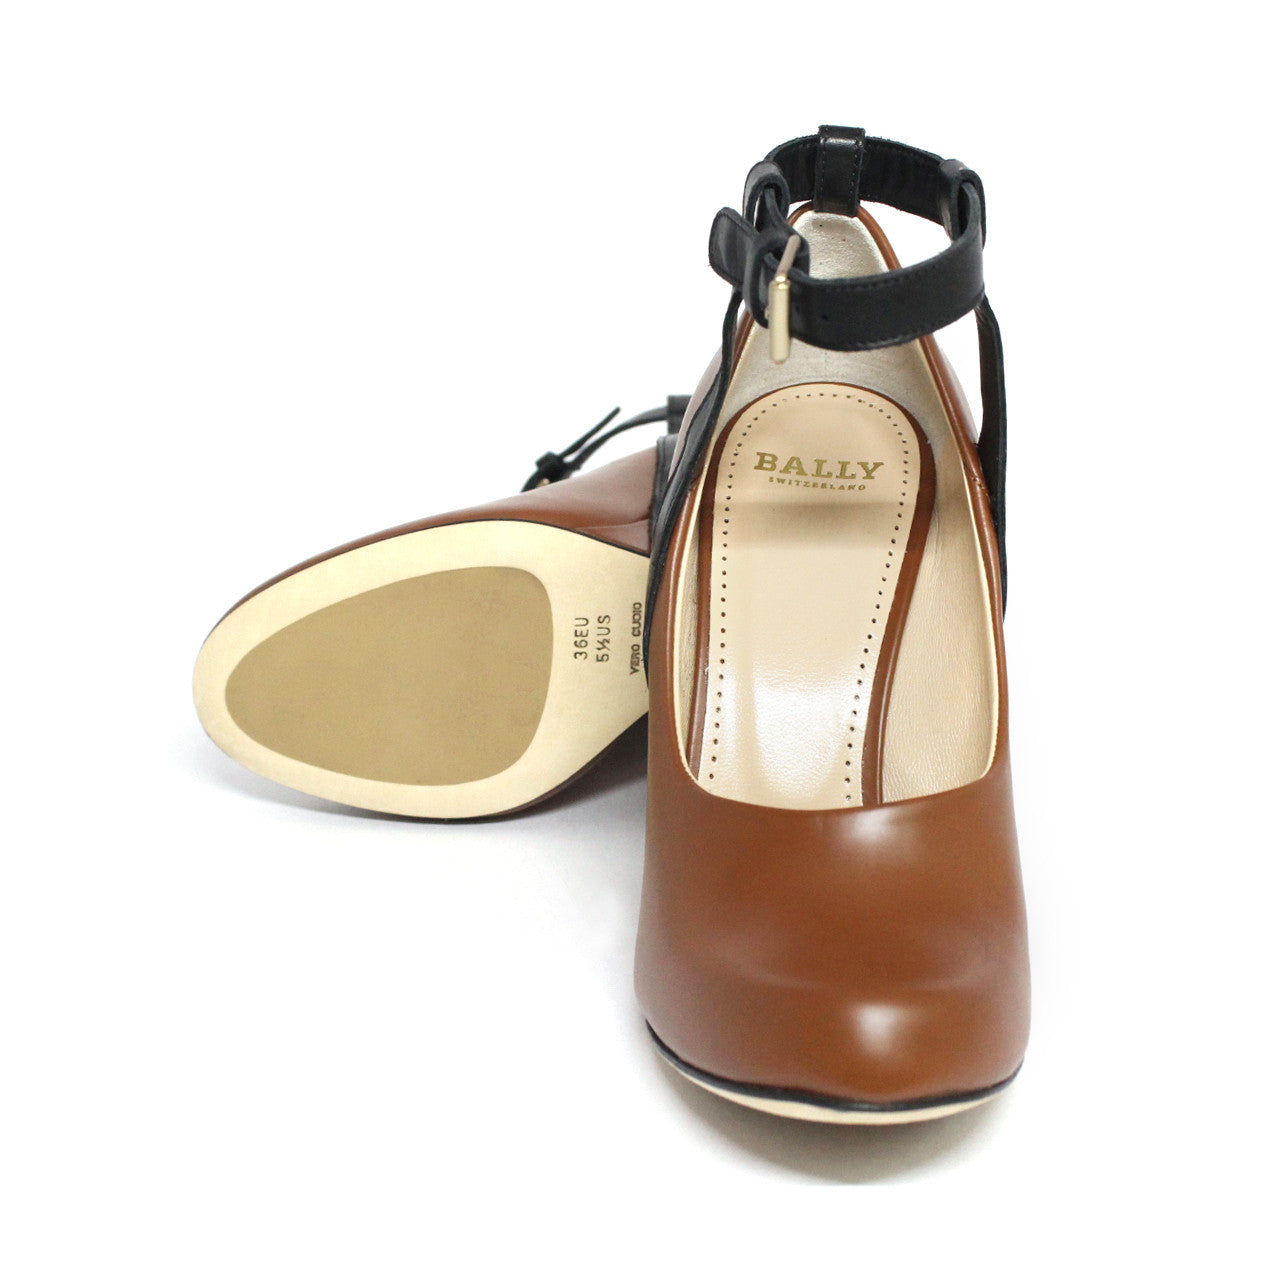 Bally Deodara Women's Wedge Platform Heels With Ankle Whisky Strap